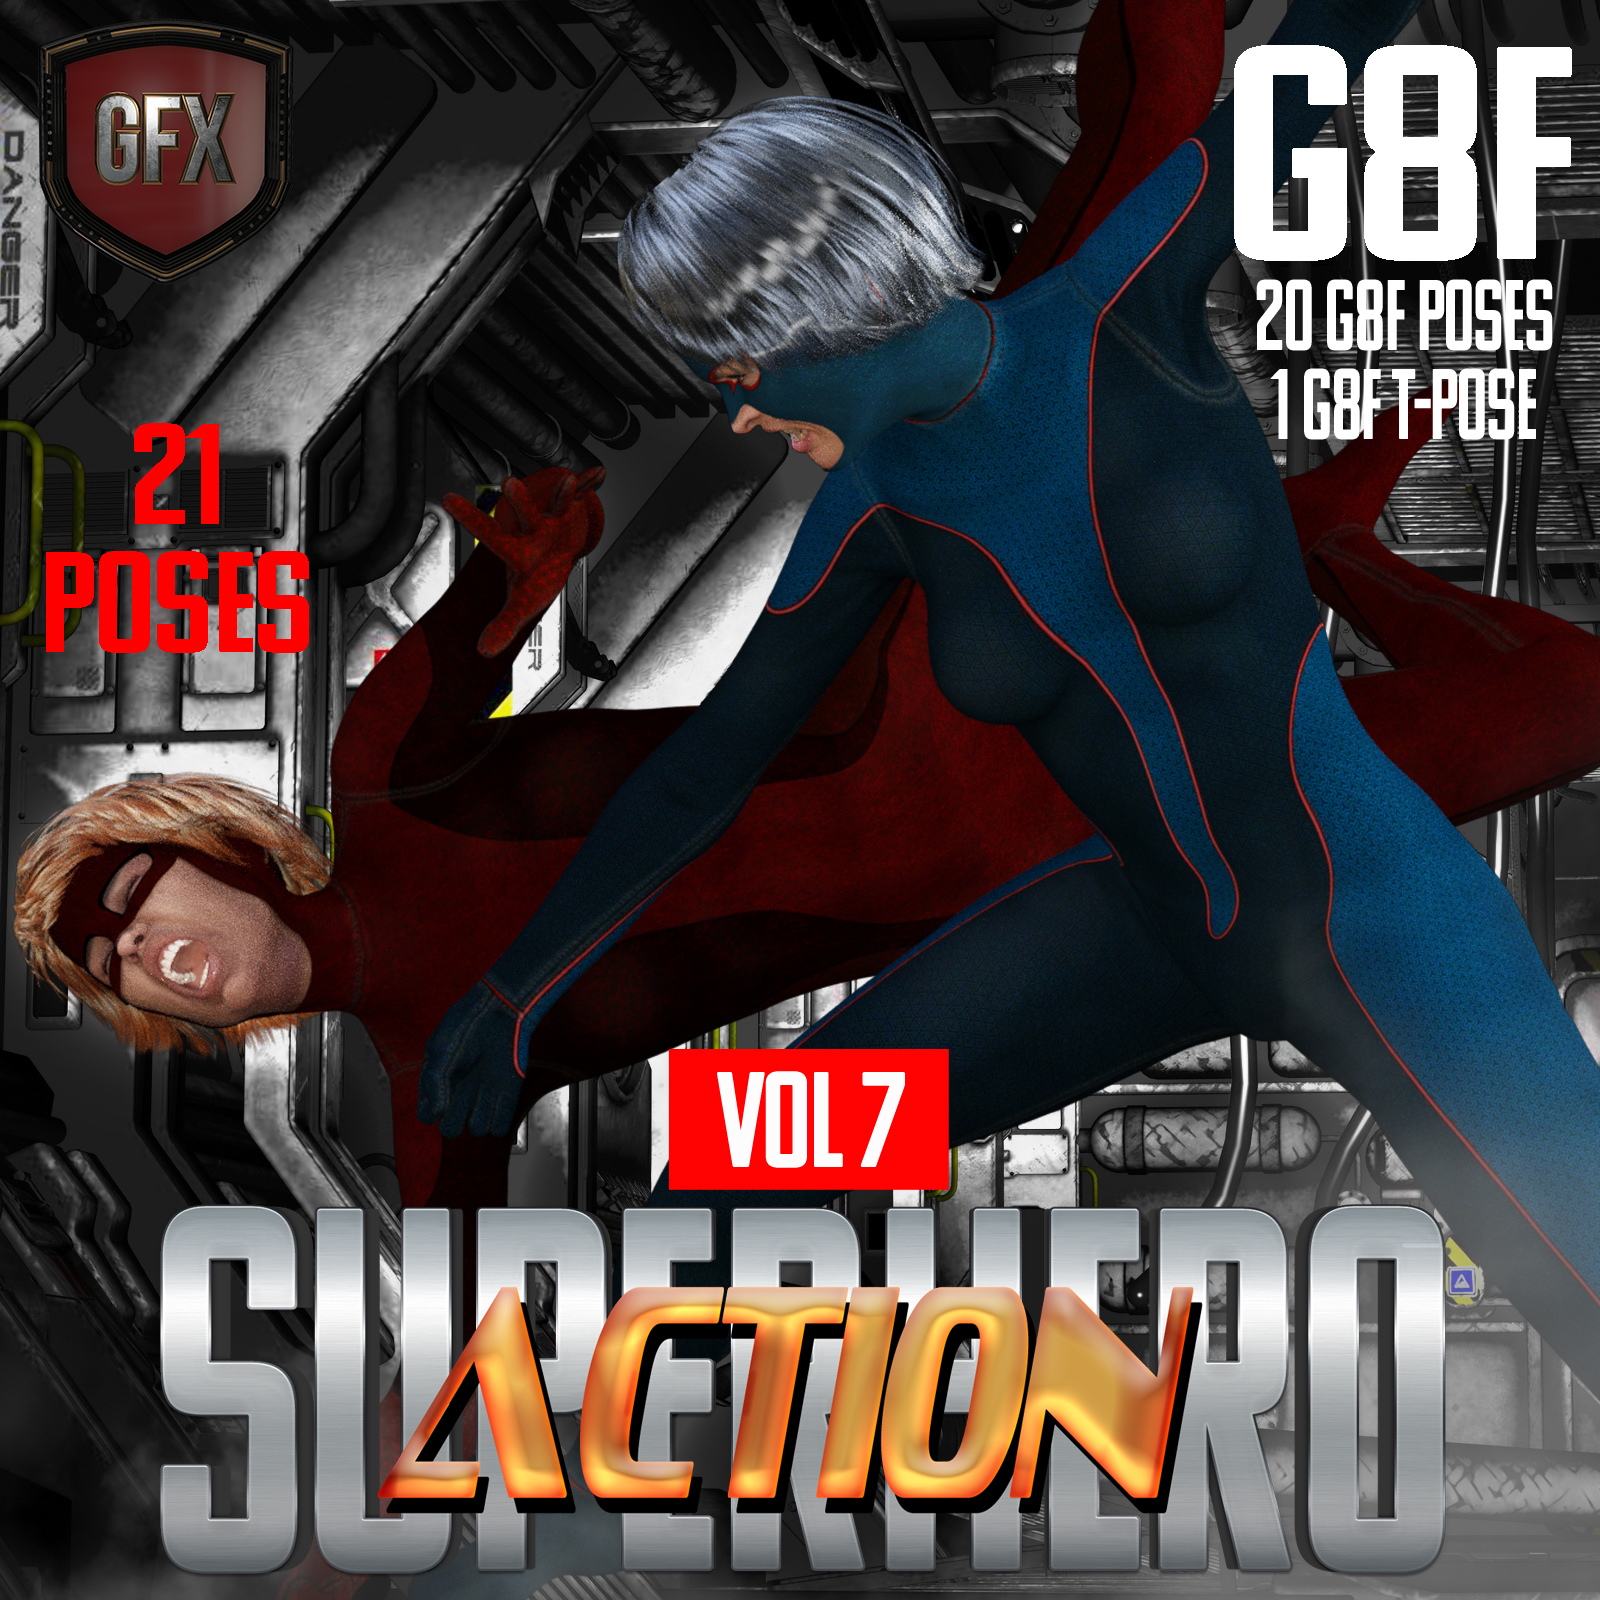 SuperHero Action for G8F Volume 7